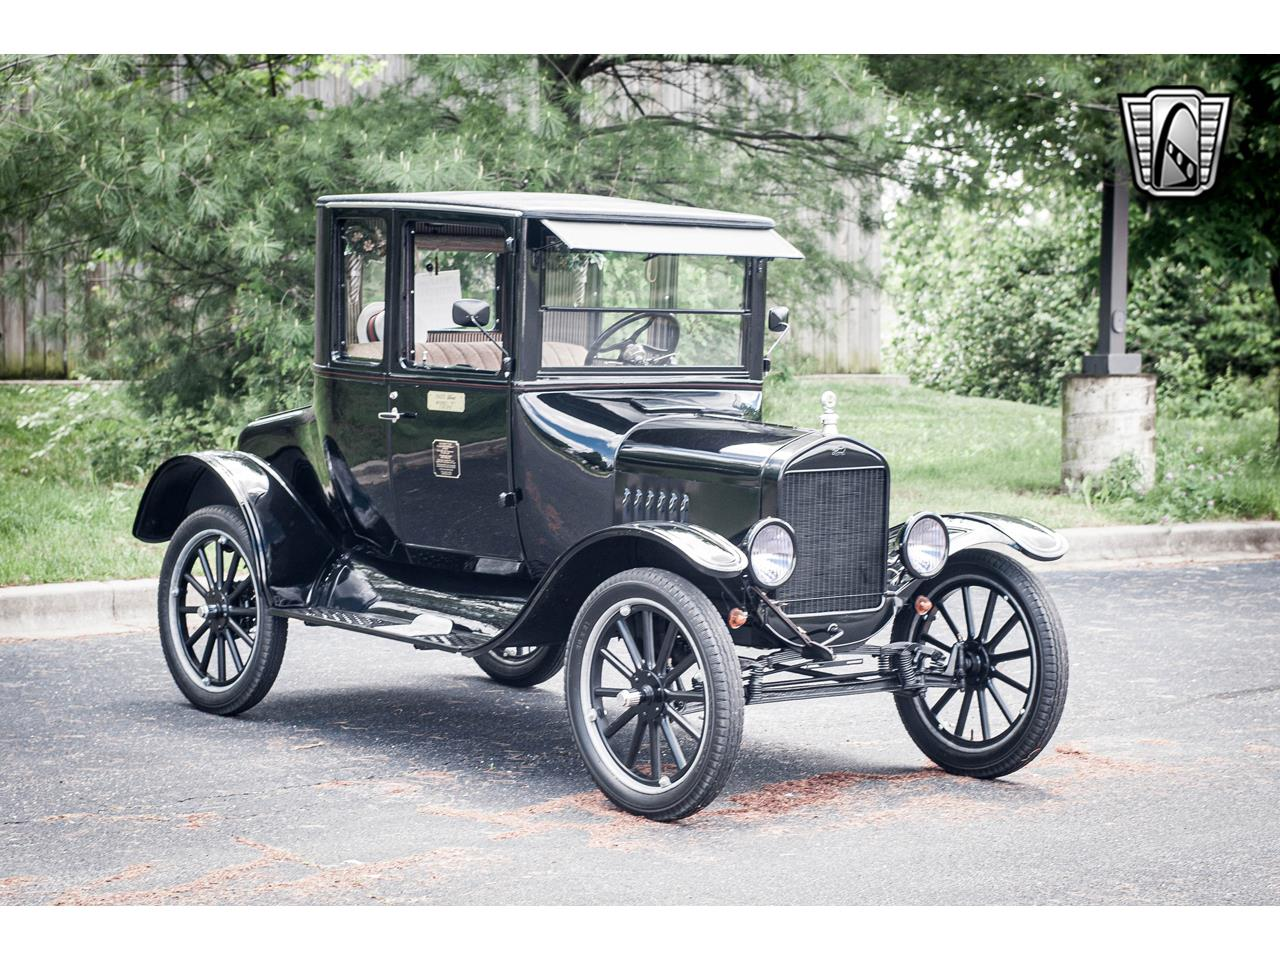 Large Picture of Classic 1925 Ford Model T located in Illinois - $18,000.00 Offered by Gateway Classic Cars - St. Louis - QB96